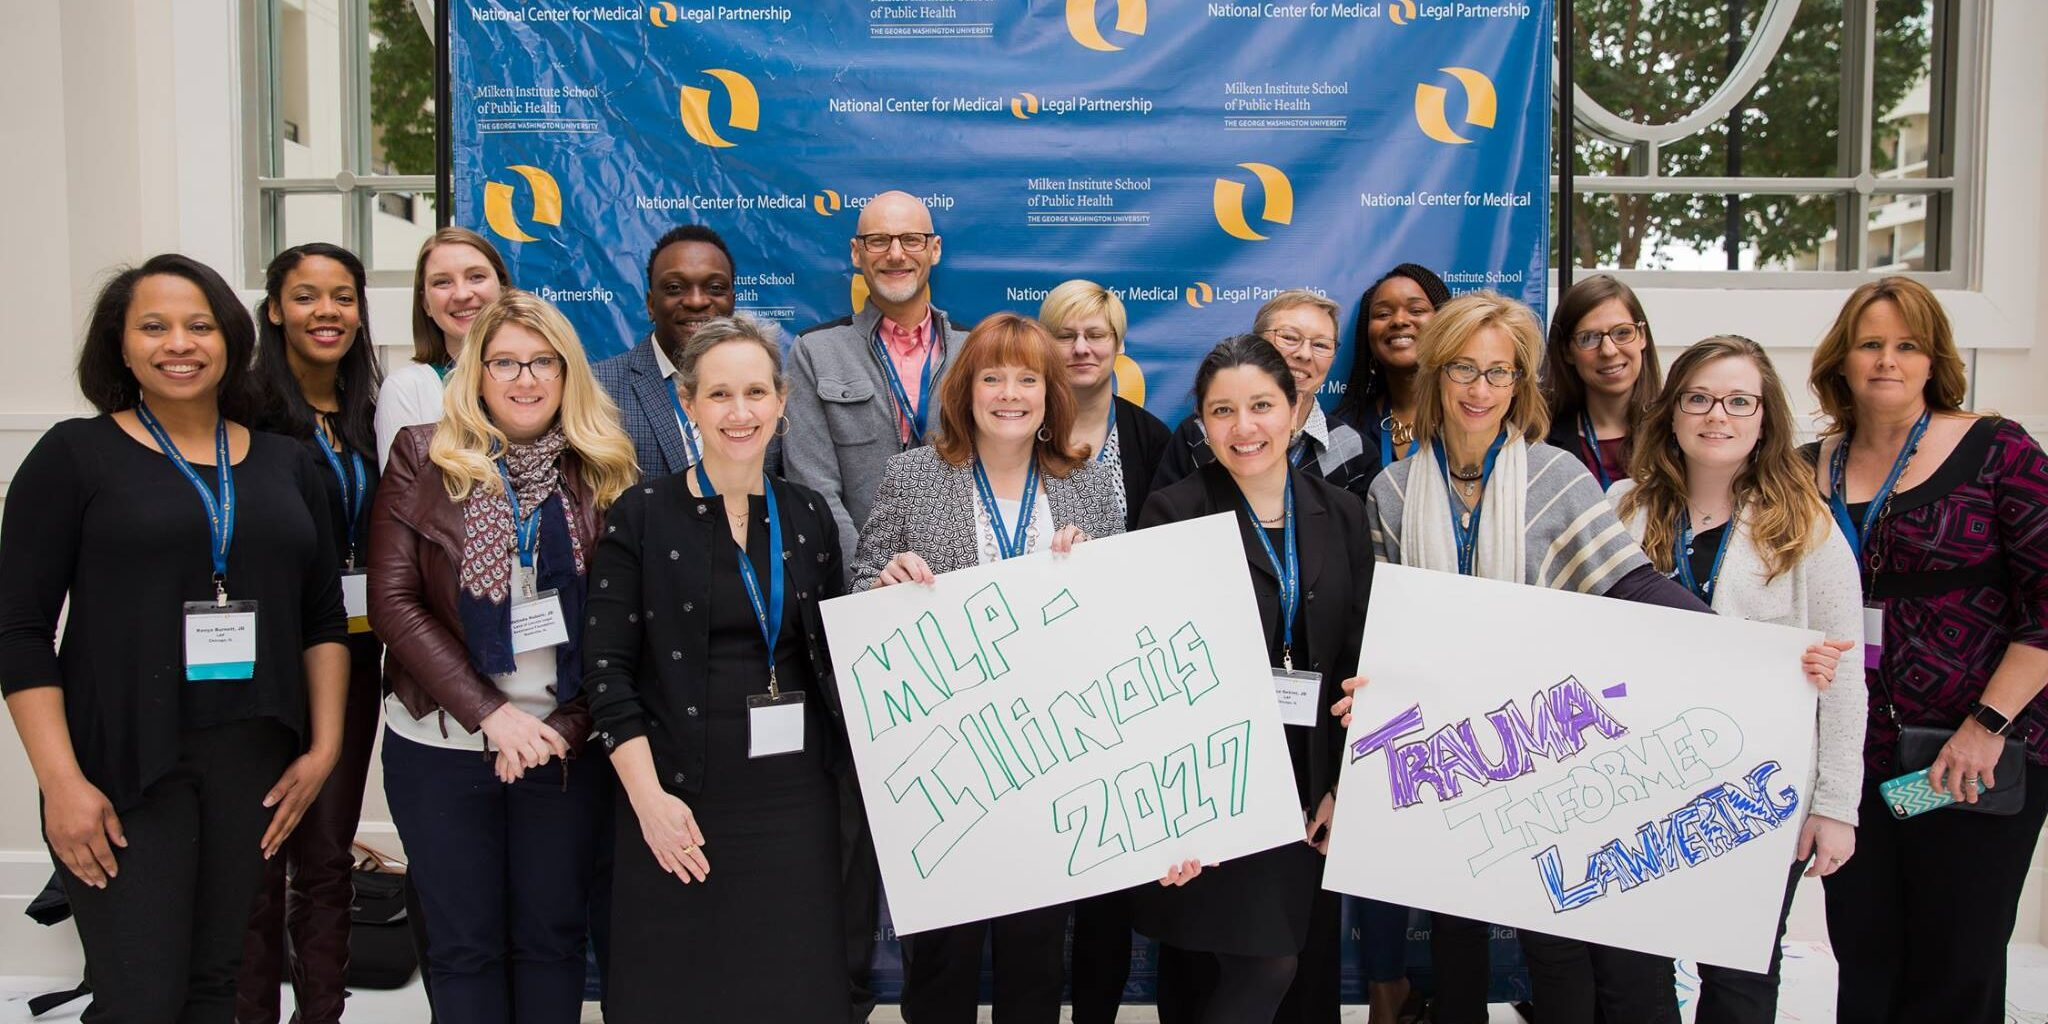 Legal Council staff members attend the National Center for Medical-Legal Partnerships Conference in April 2017.